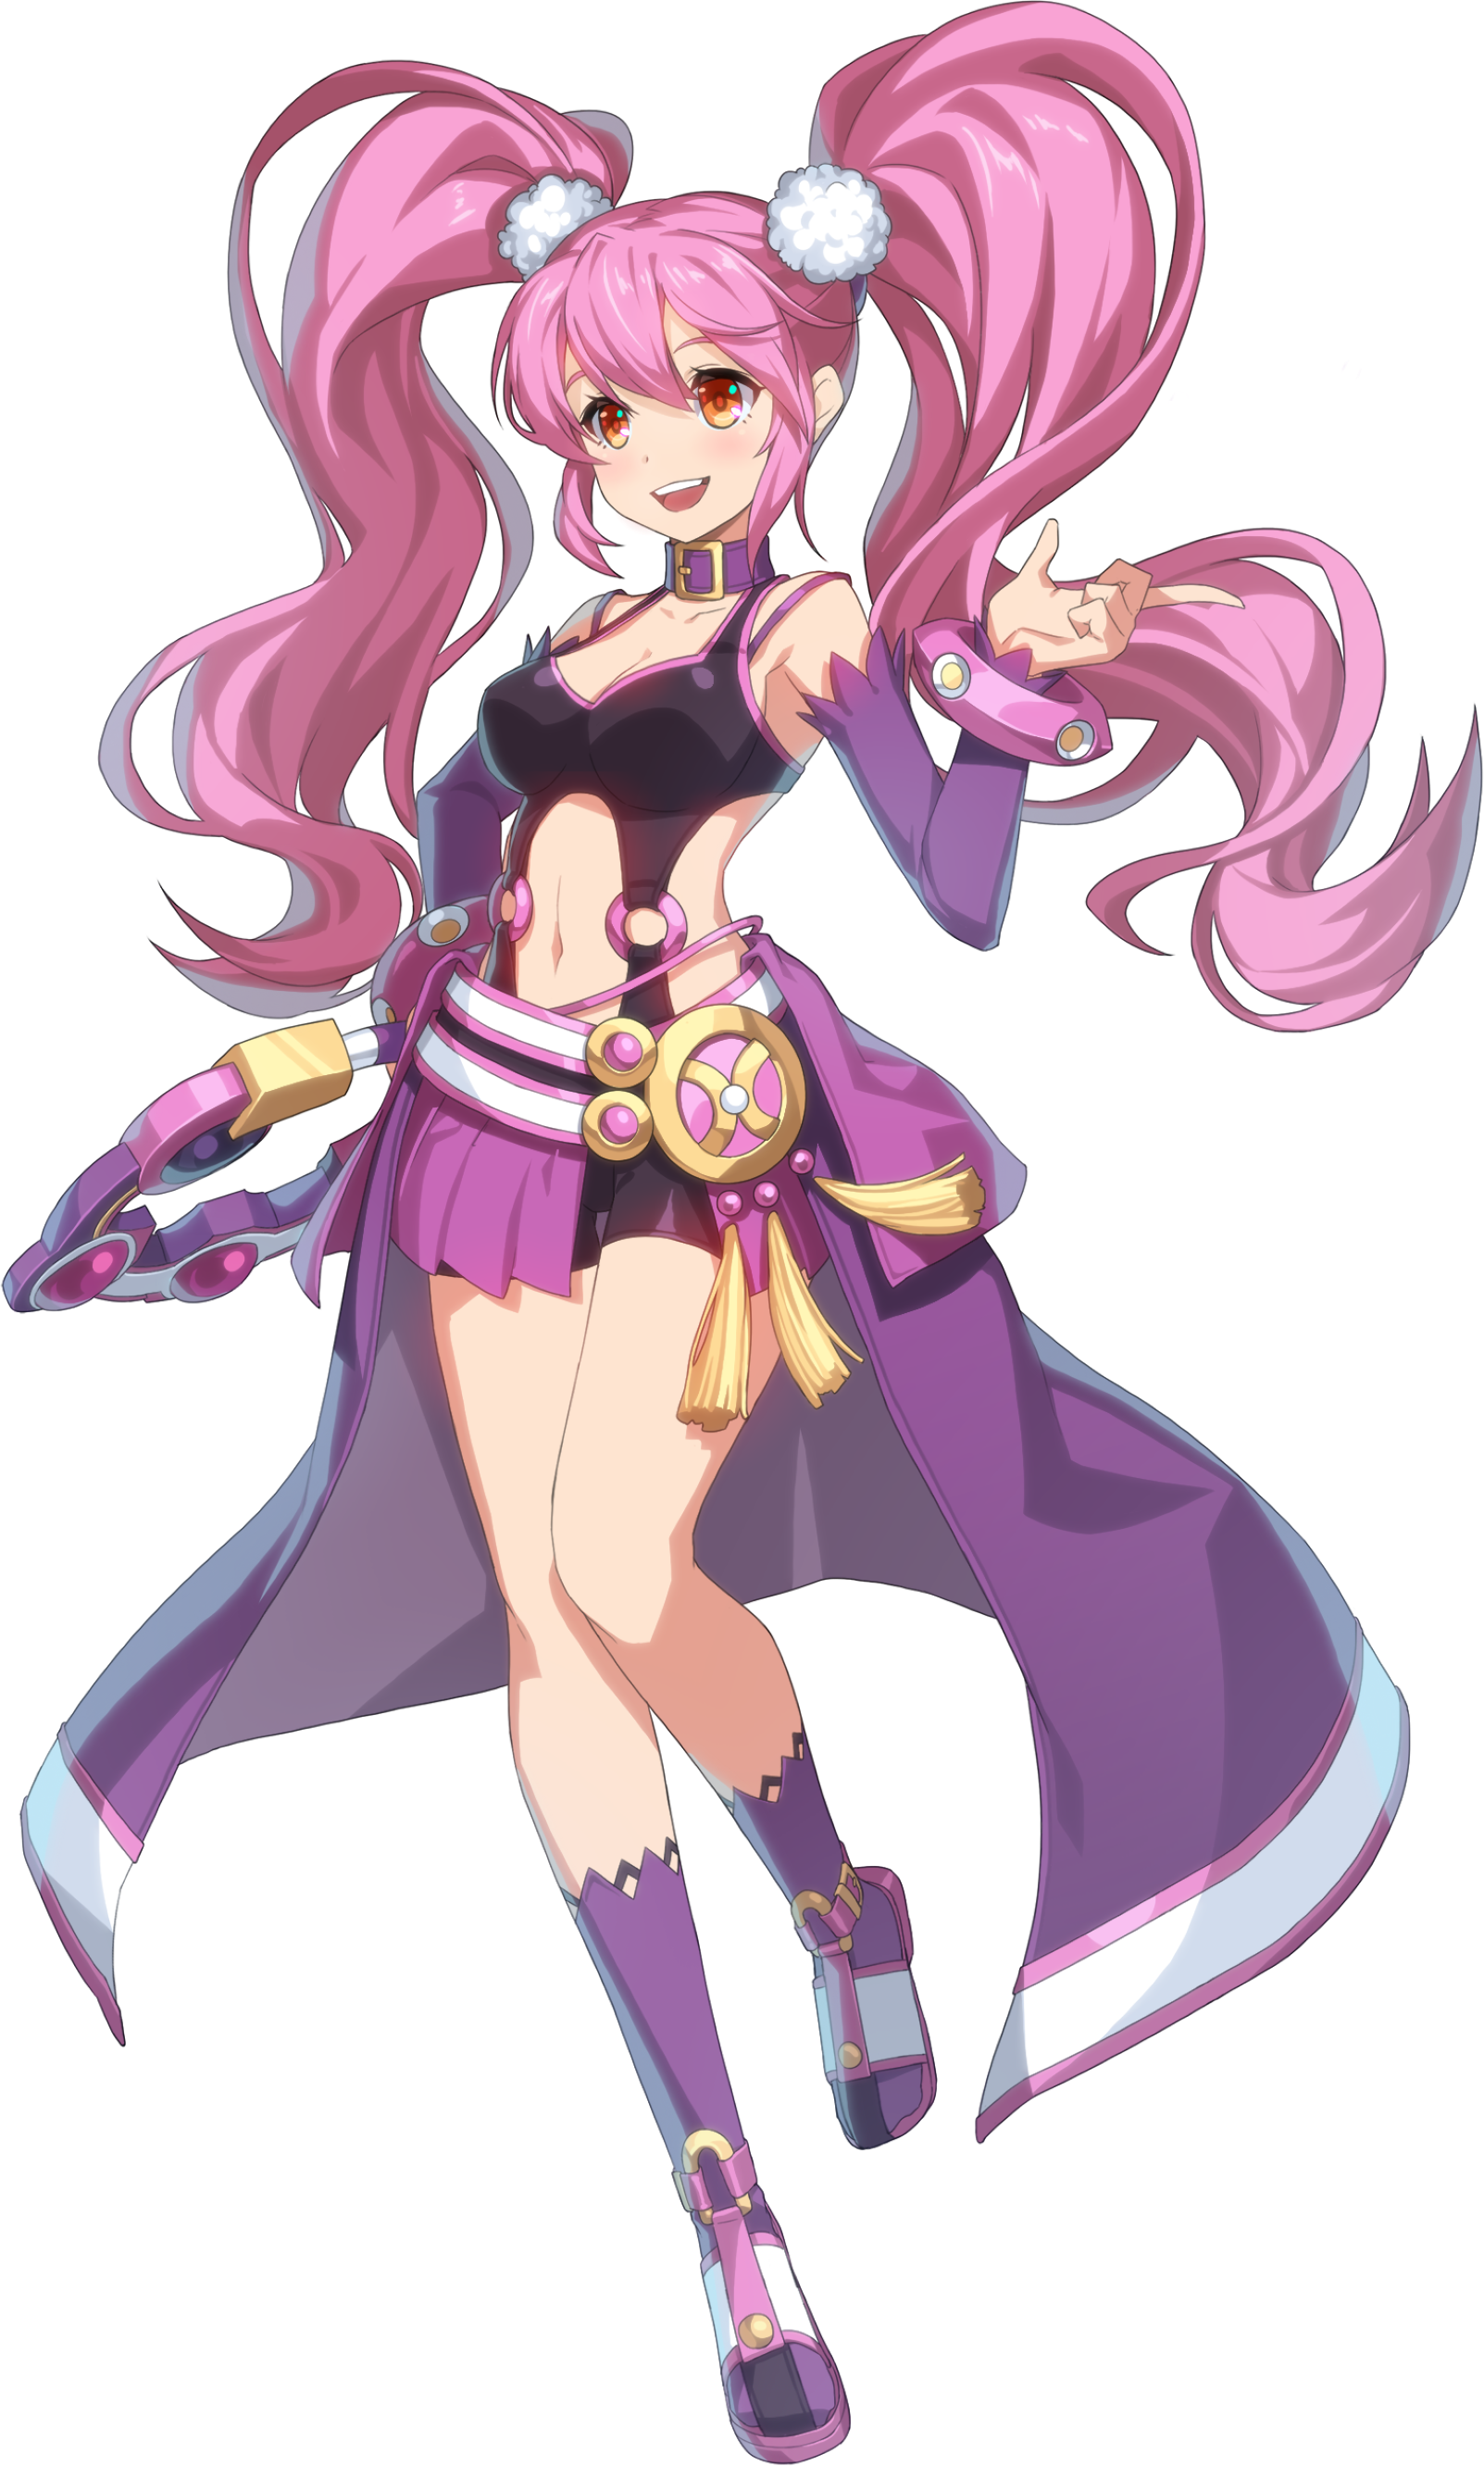 Amy/Grand Chase Dimensional Chaser | Grand Chase Wiki